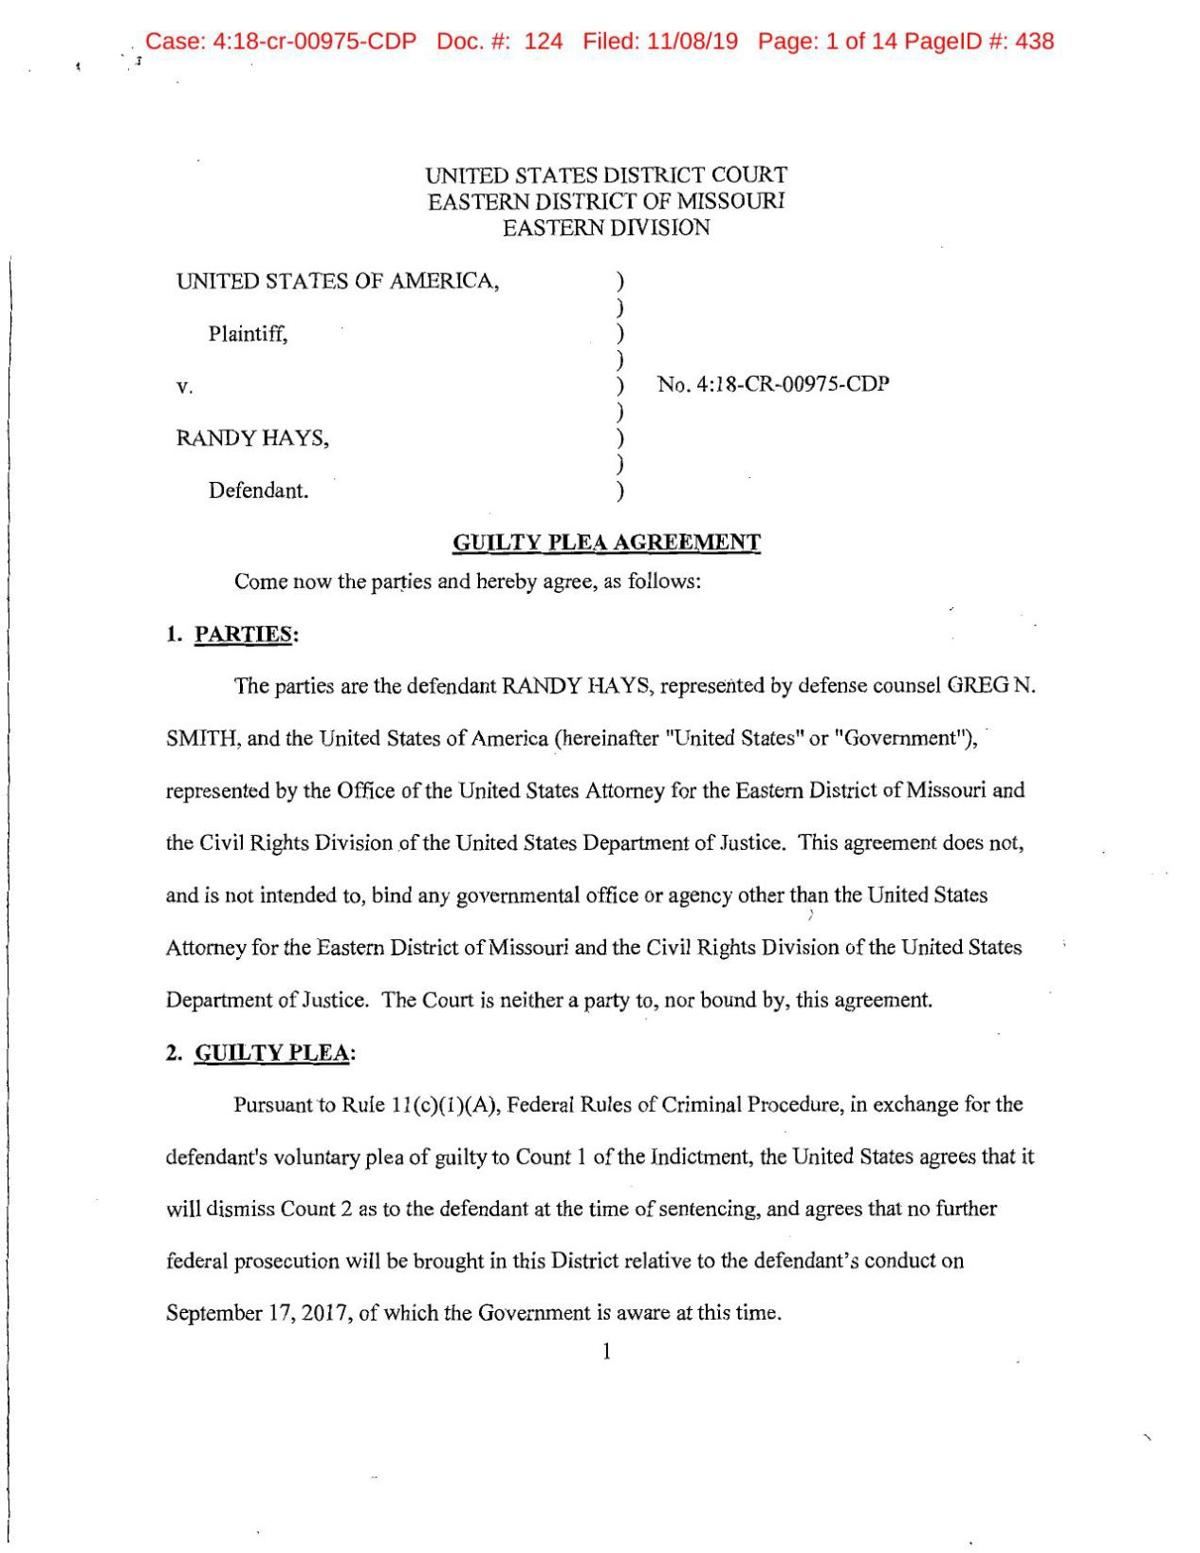 Randy Hays Plea (FILED).pdf